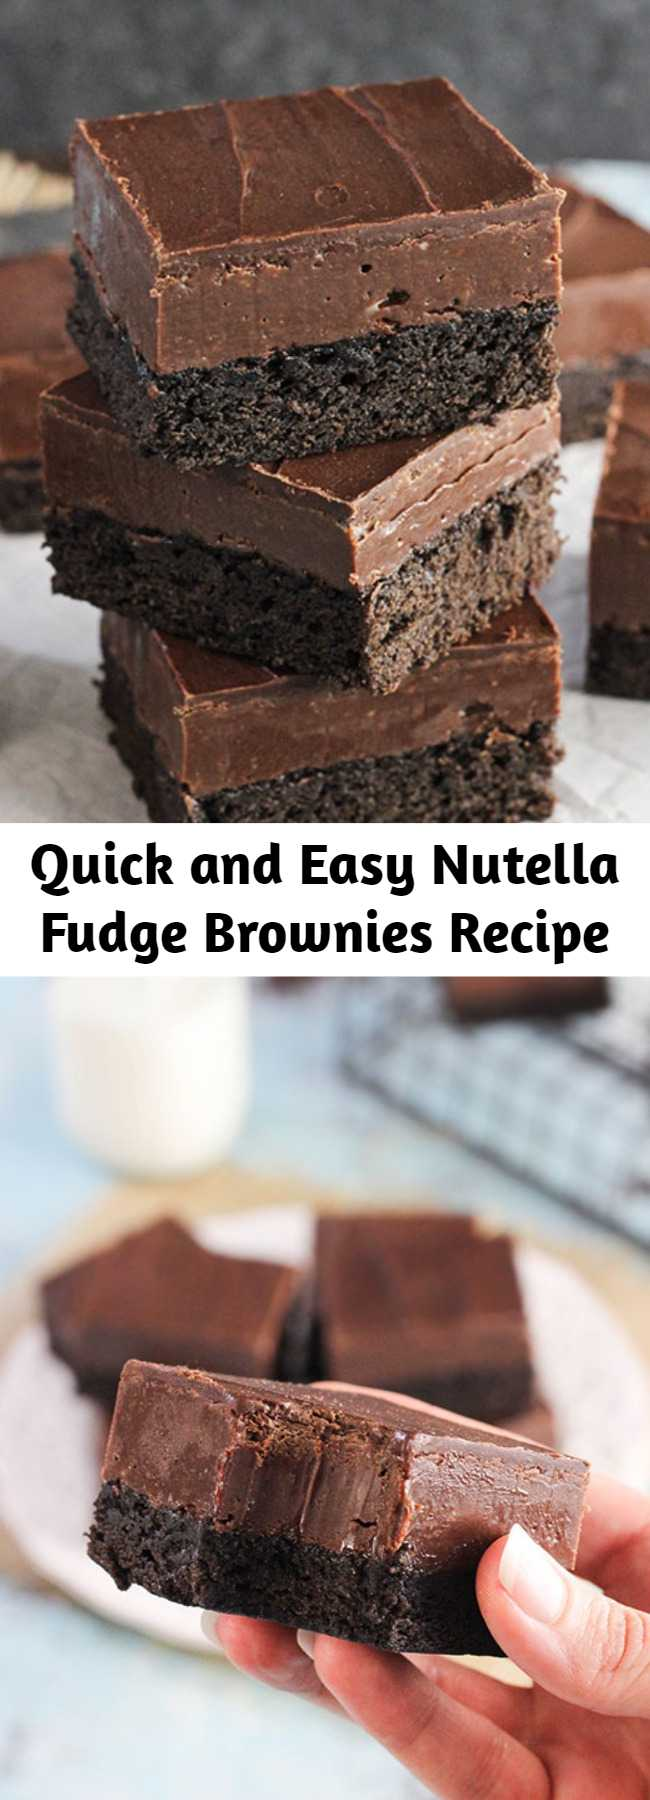 Quick and Easy Nutella Fudge Brownies Recipe - These Nutella Fudge Brownies are decadent little bars with a dense brownie on the bottom, Nutella fudge in the middle and chocolate on top. You can't go wrong with this chocolatey confection!